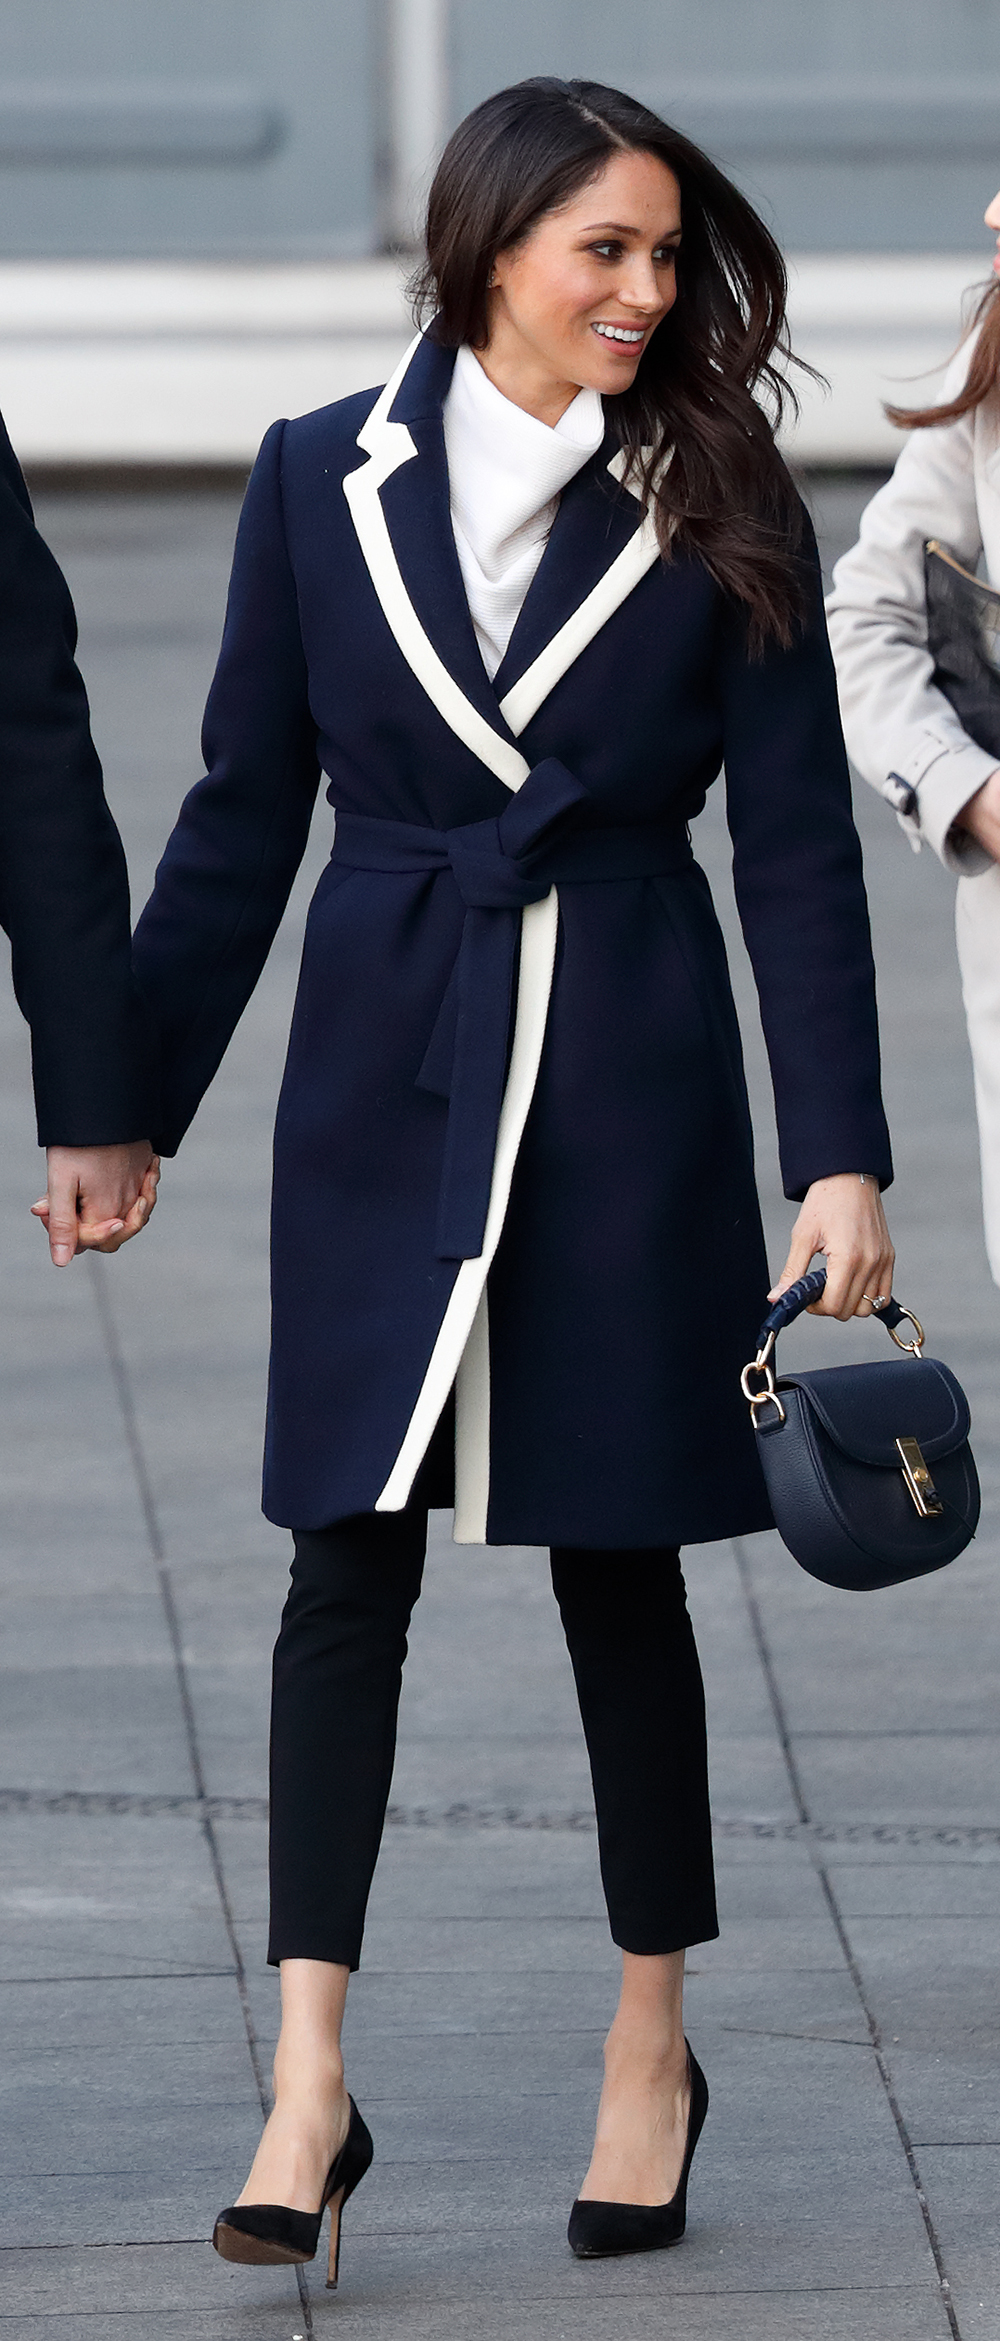 gettyimages 929818862 Under the Radar Fashion Brands Meghan Markle Has Elevated